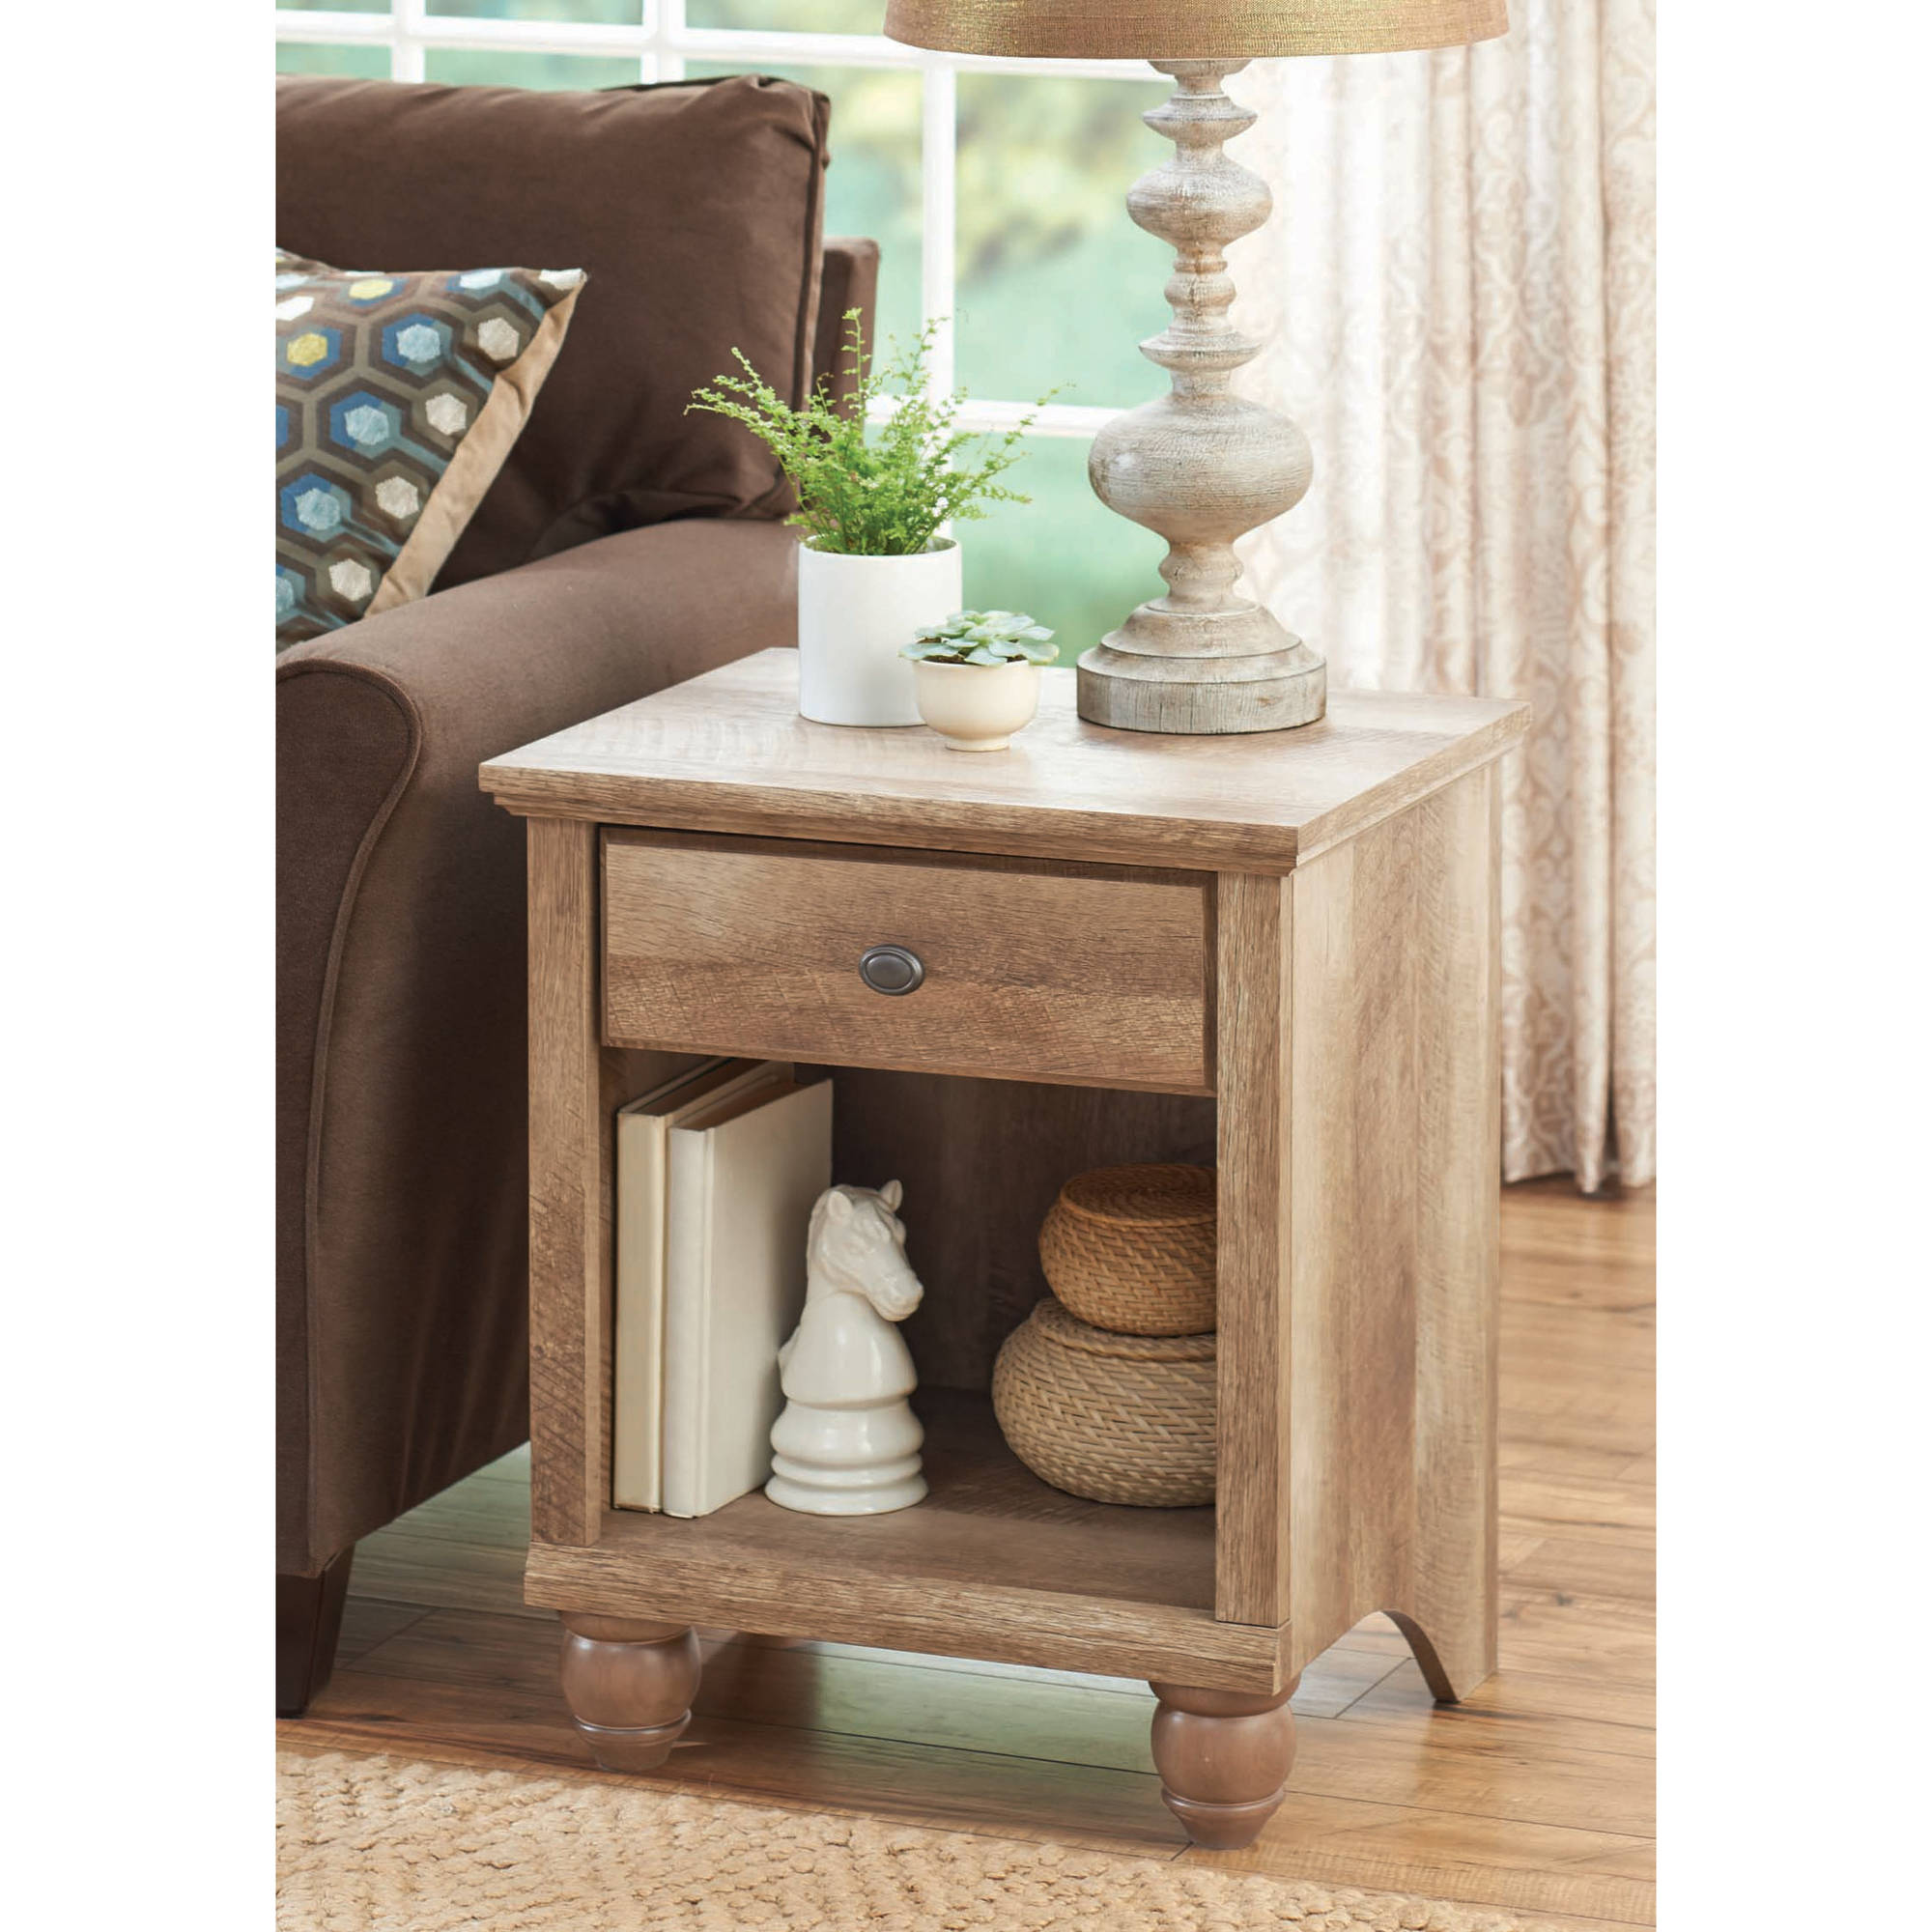 better homes gardens crossmill accent table weathered finish small living room tables marble cocktail sets folding outdoor side white oak bedside outside umbrella stand patio